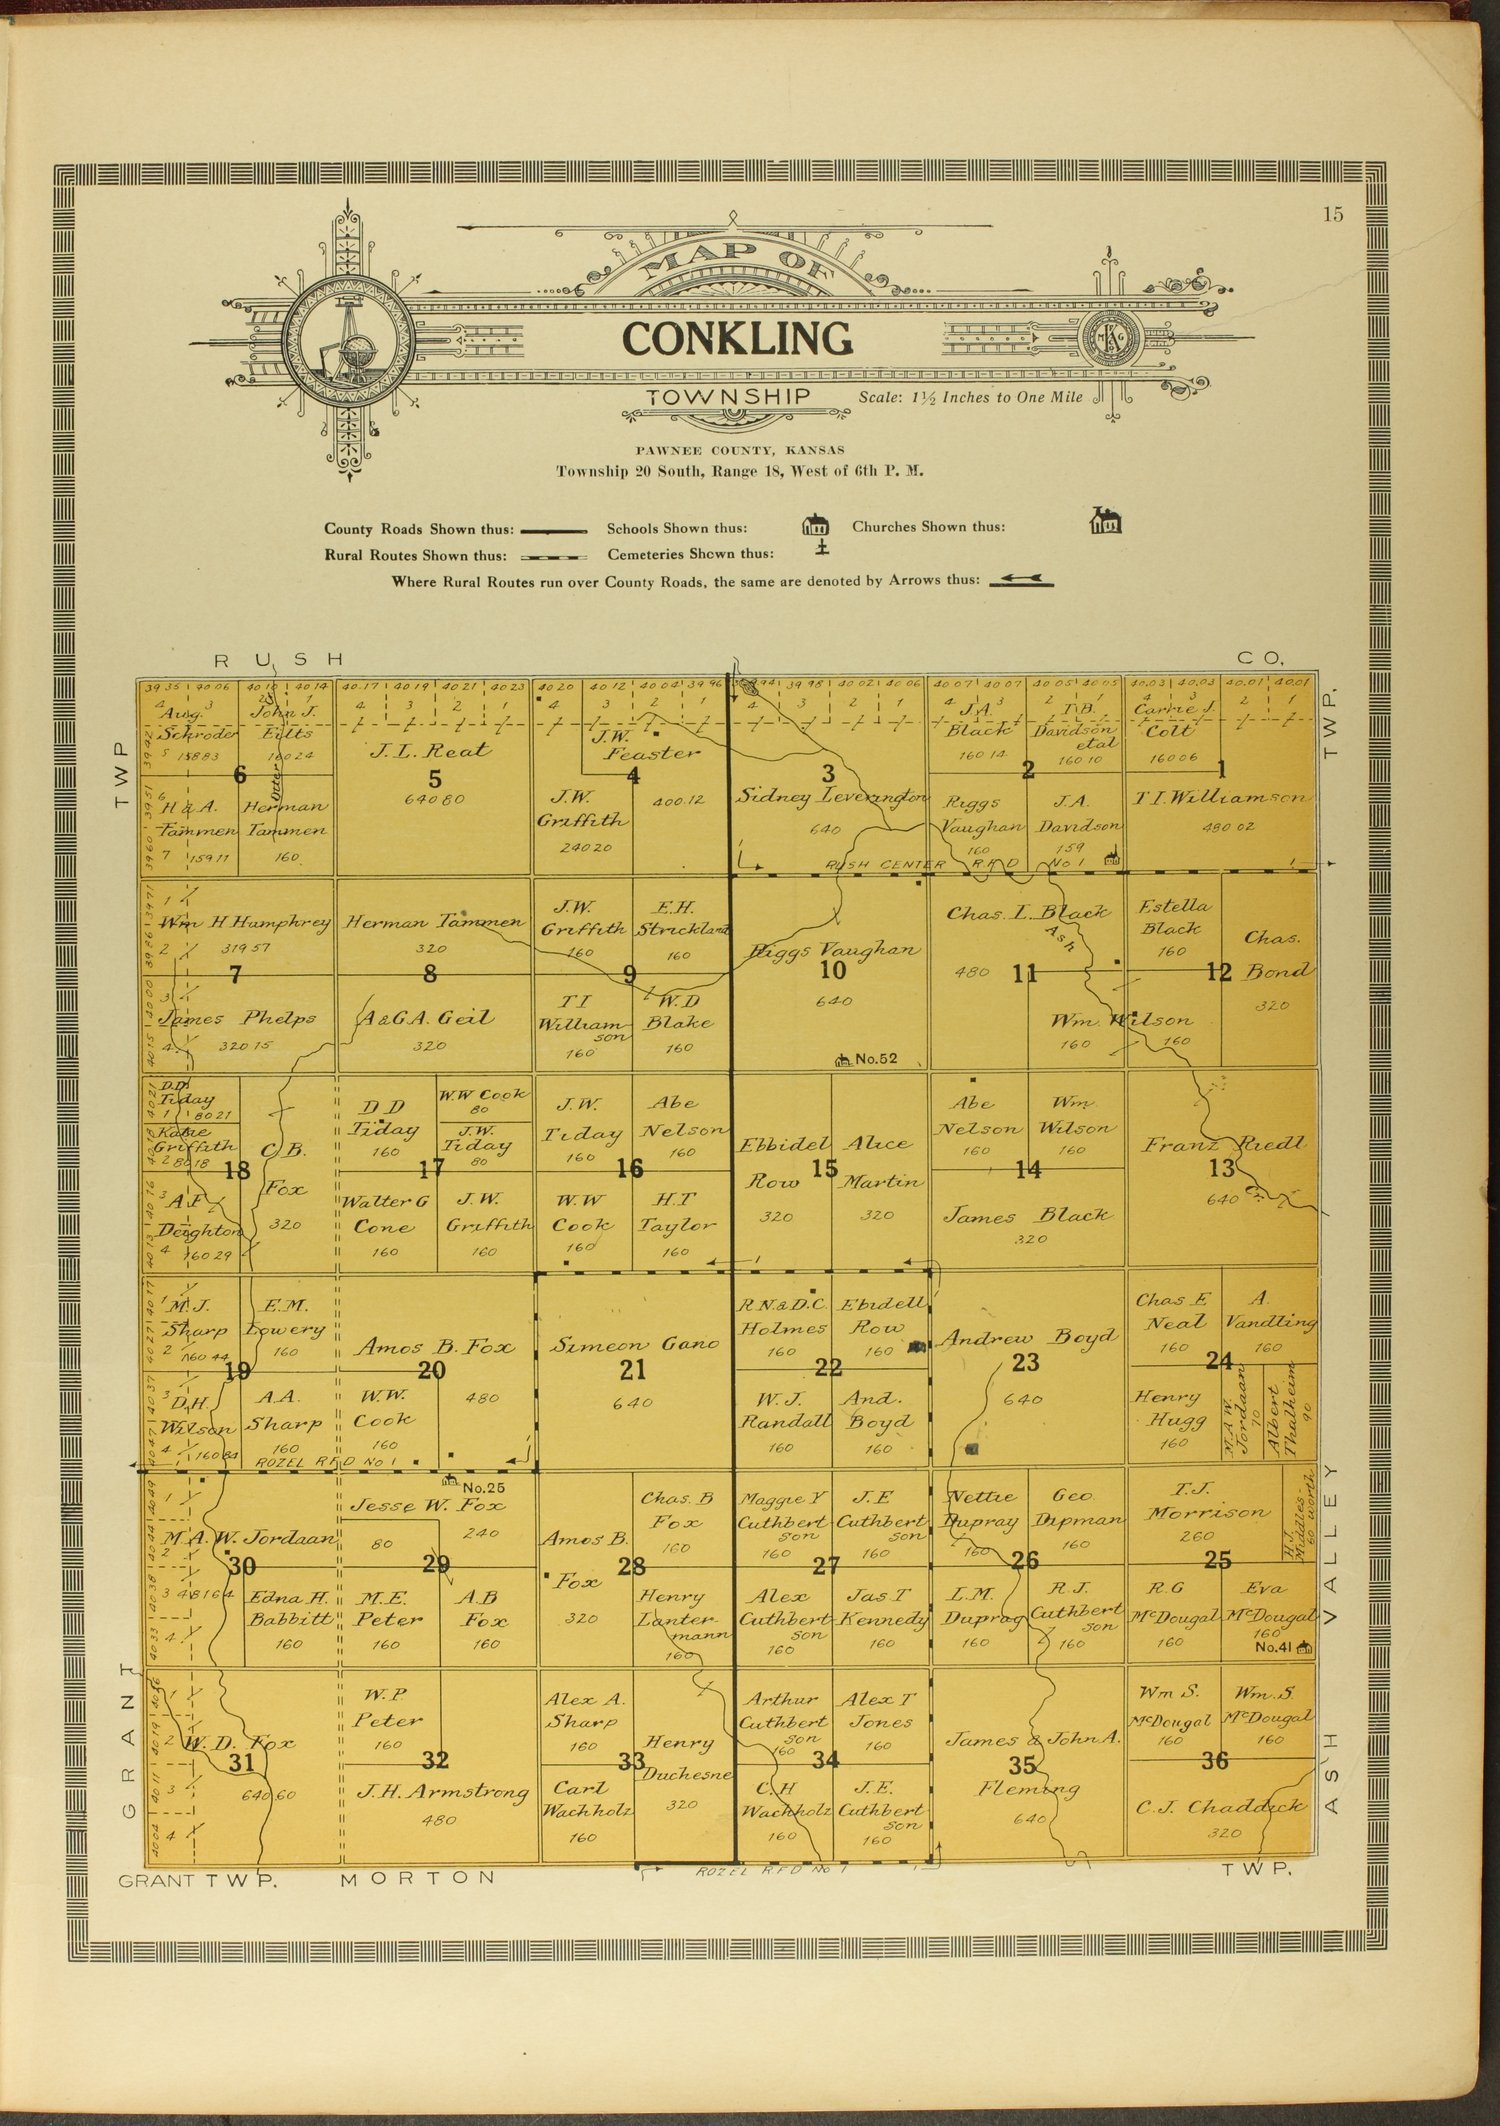 Atlas and plat book of Pawnee County, Kansas - 15